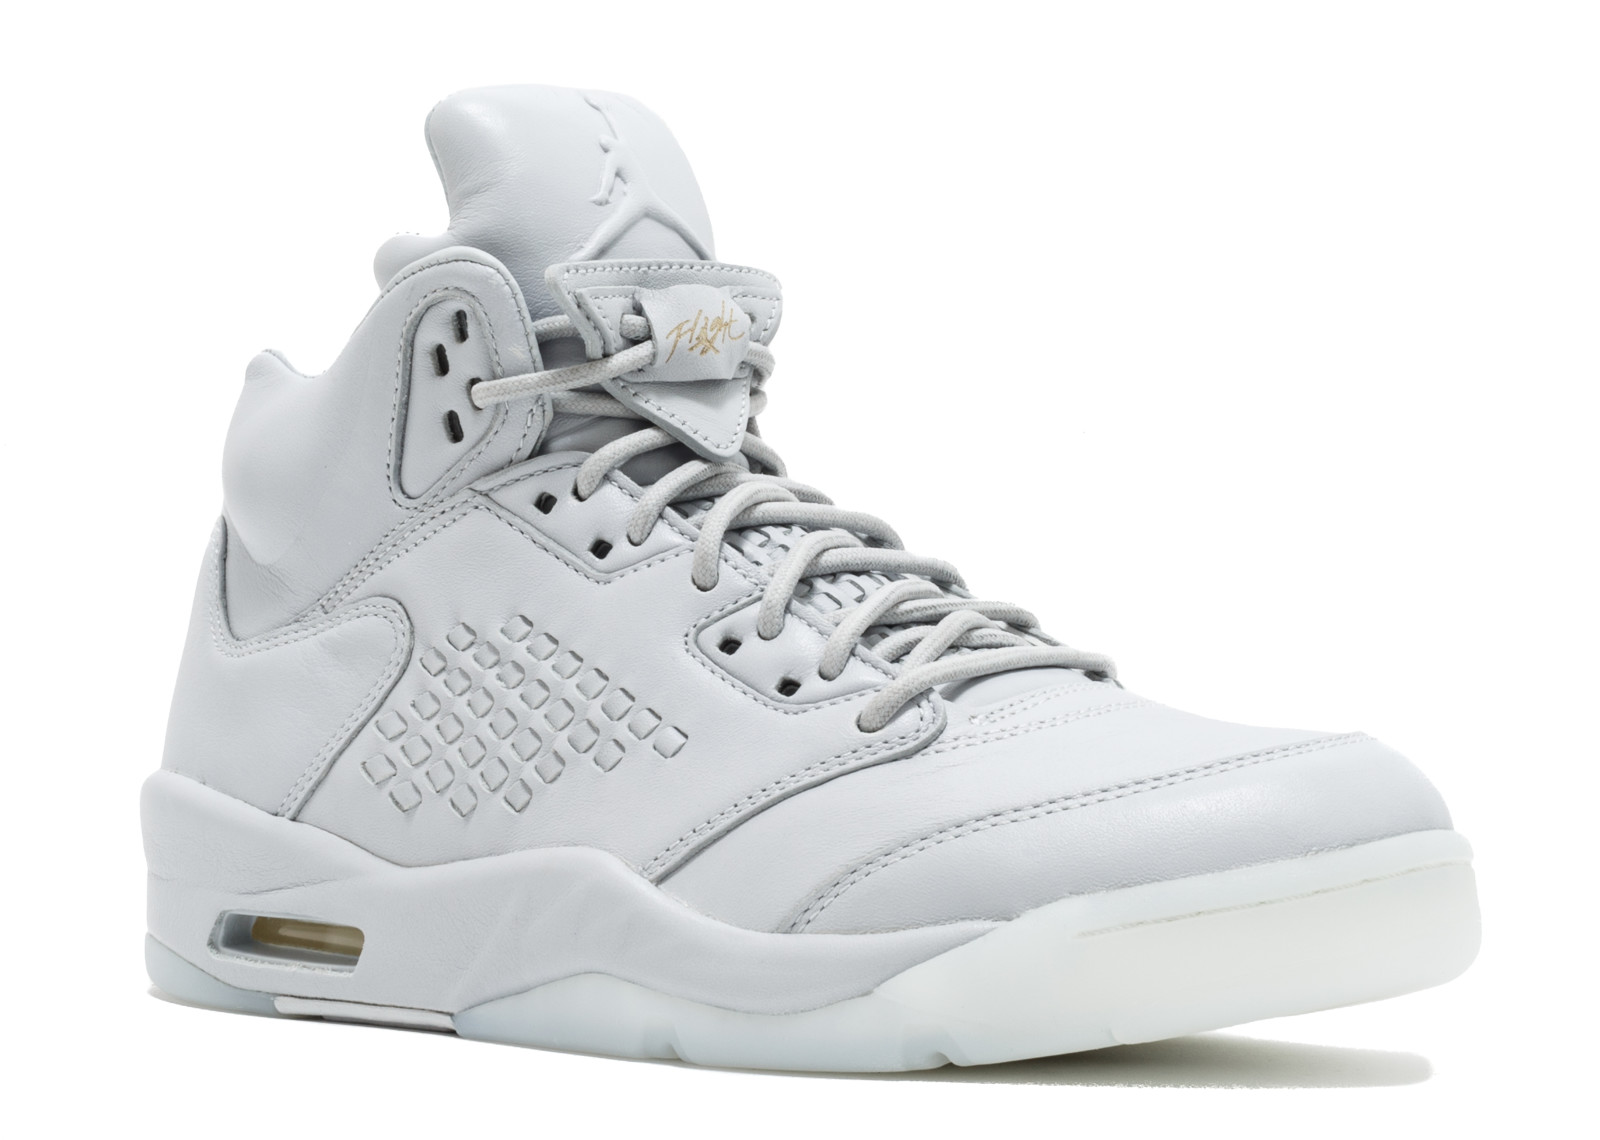 86ad8198b80c23 Men - Air Jordan 5 Retro Prem  Pure Platinum  - 881432-003 - Size 14